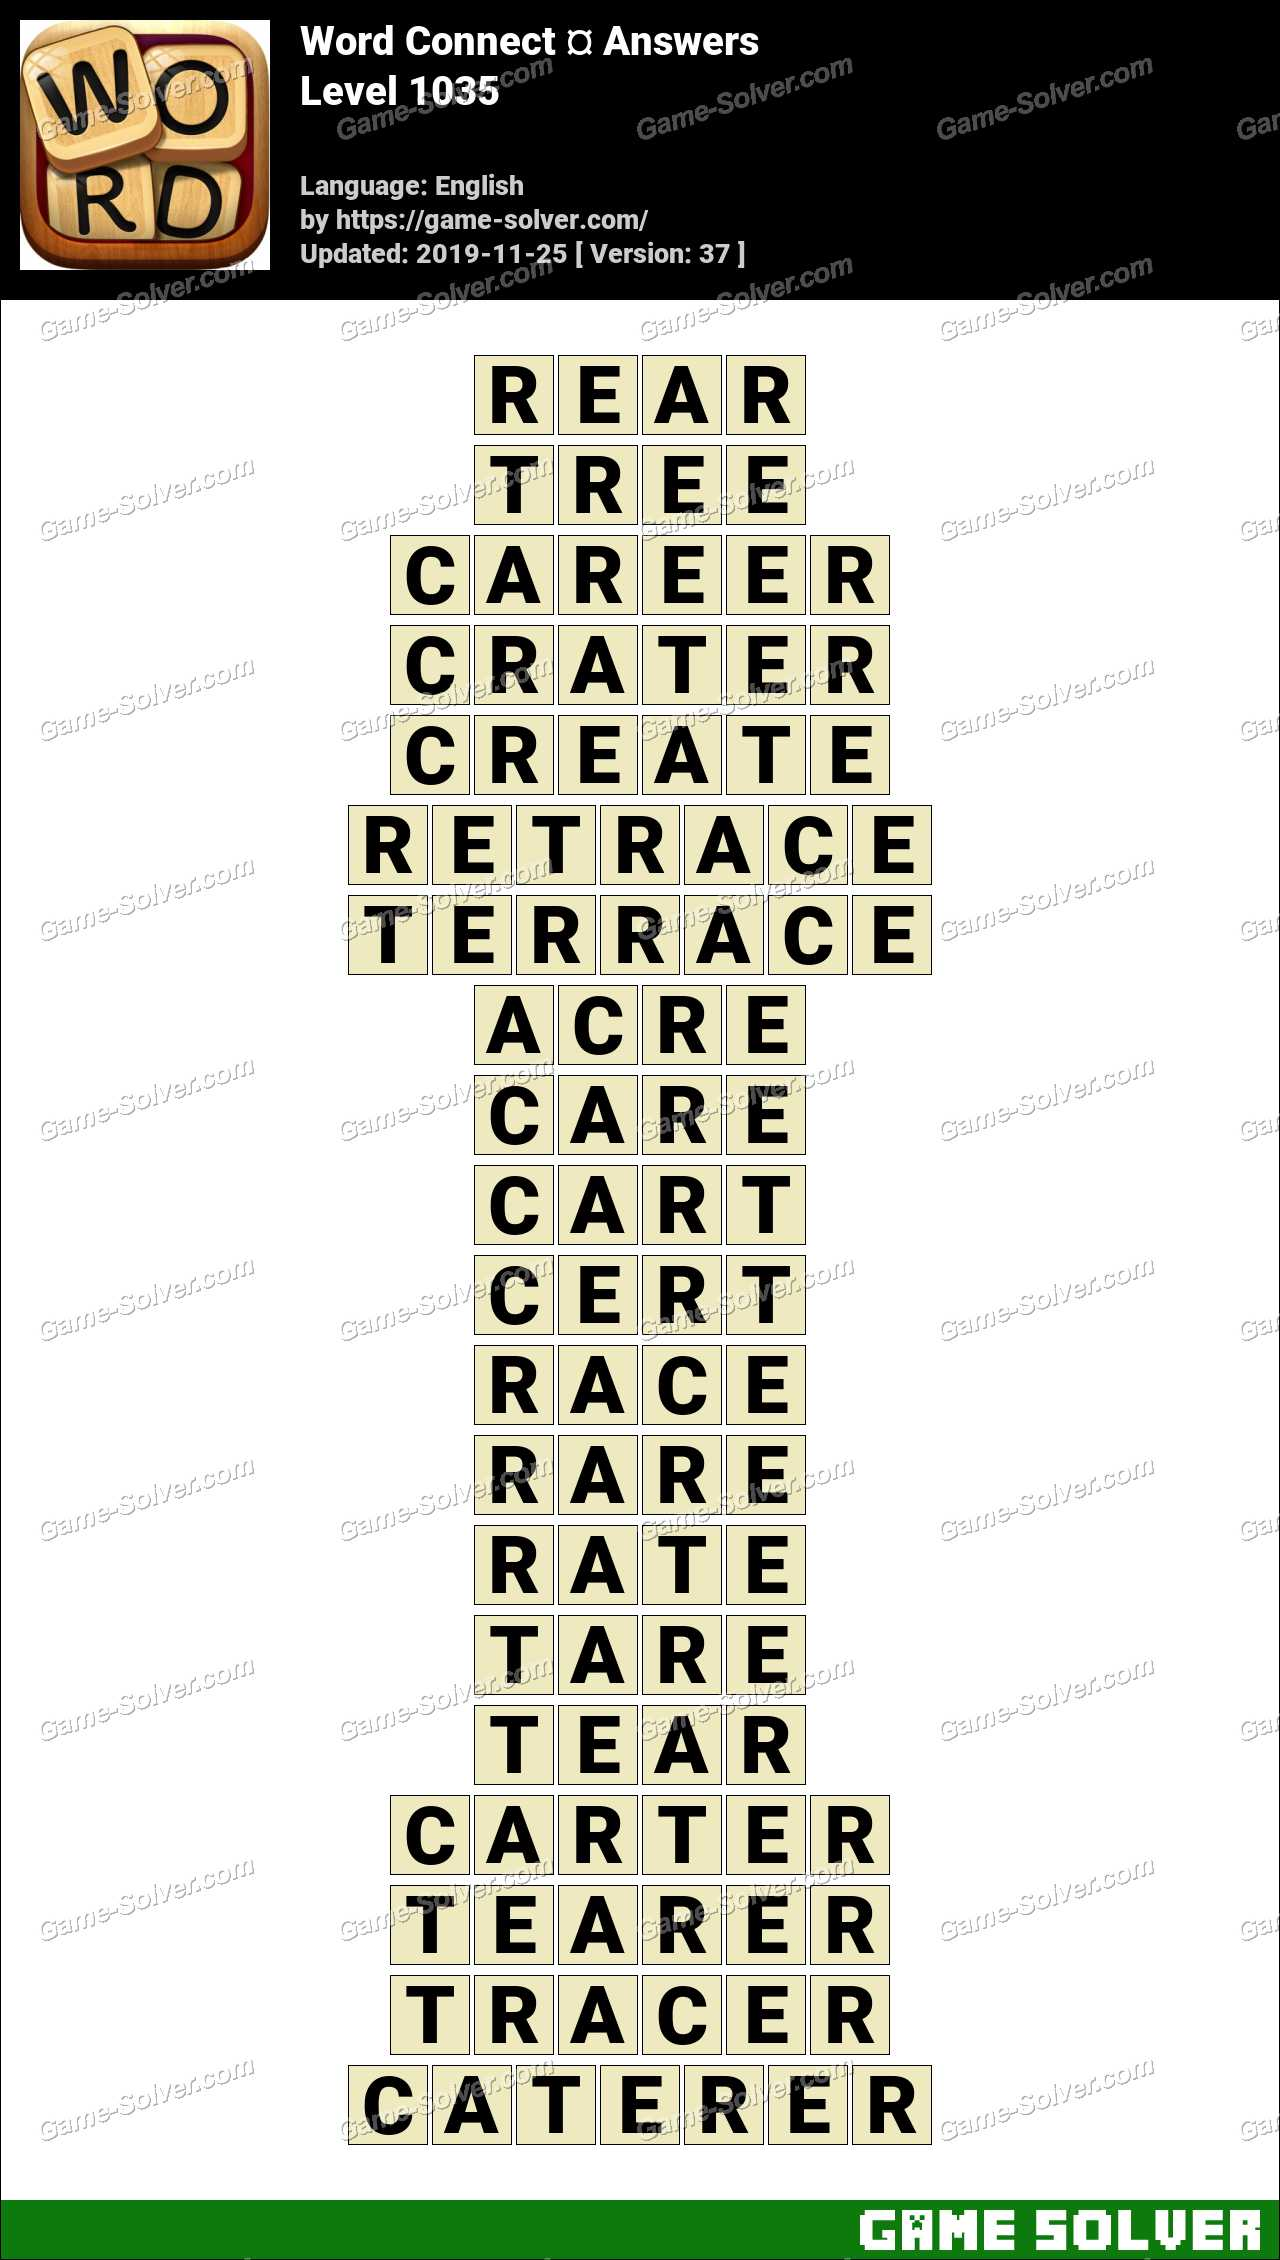 Word Connect Level 1035 Answers